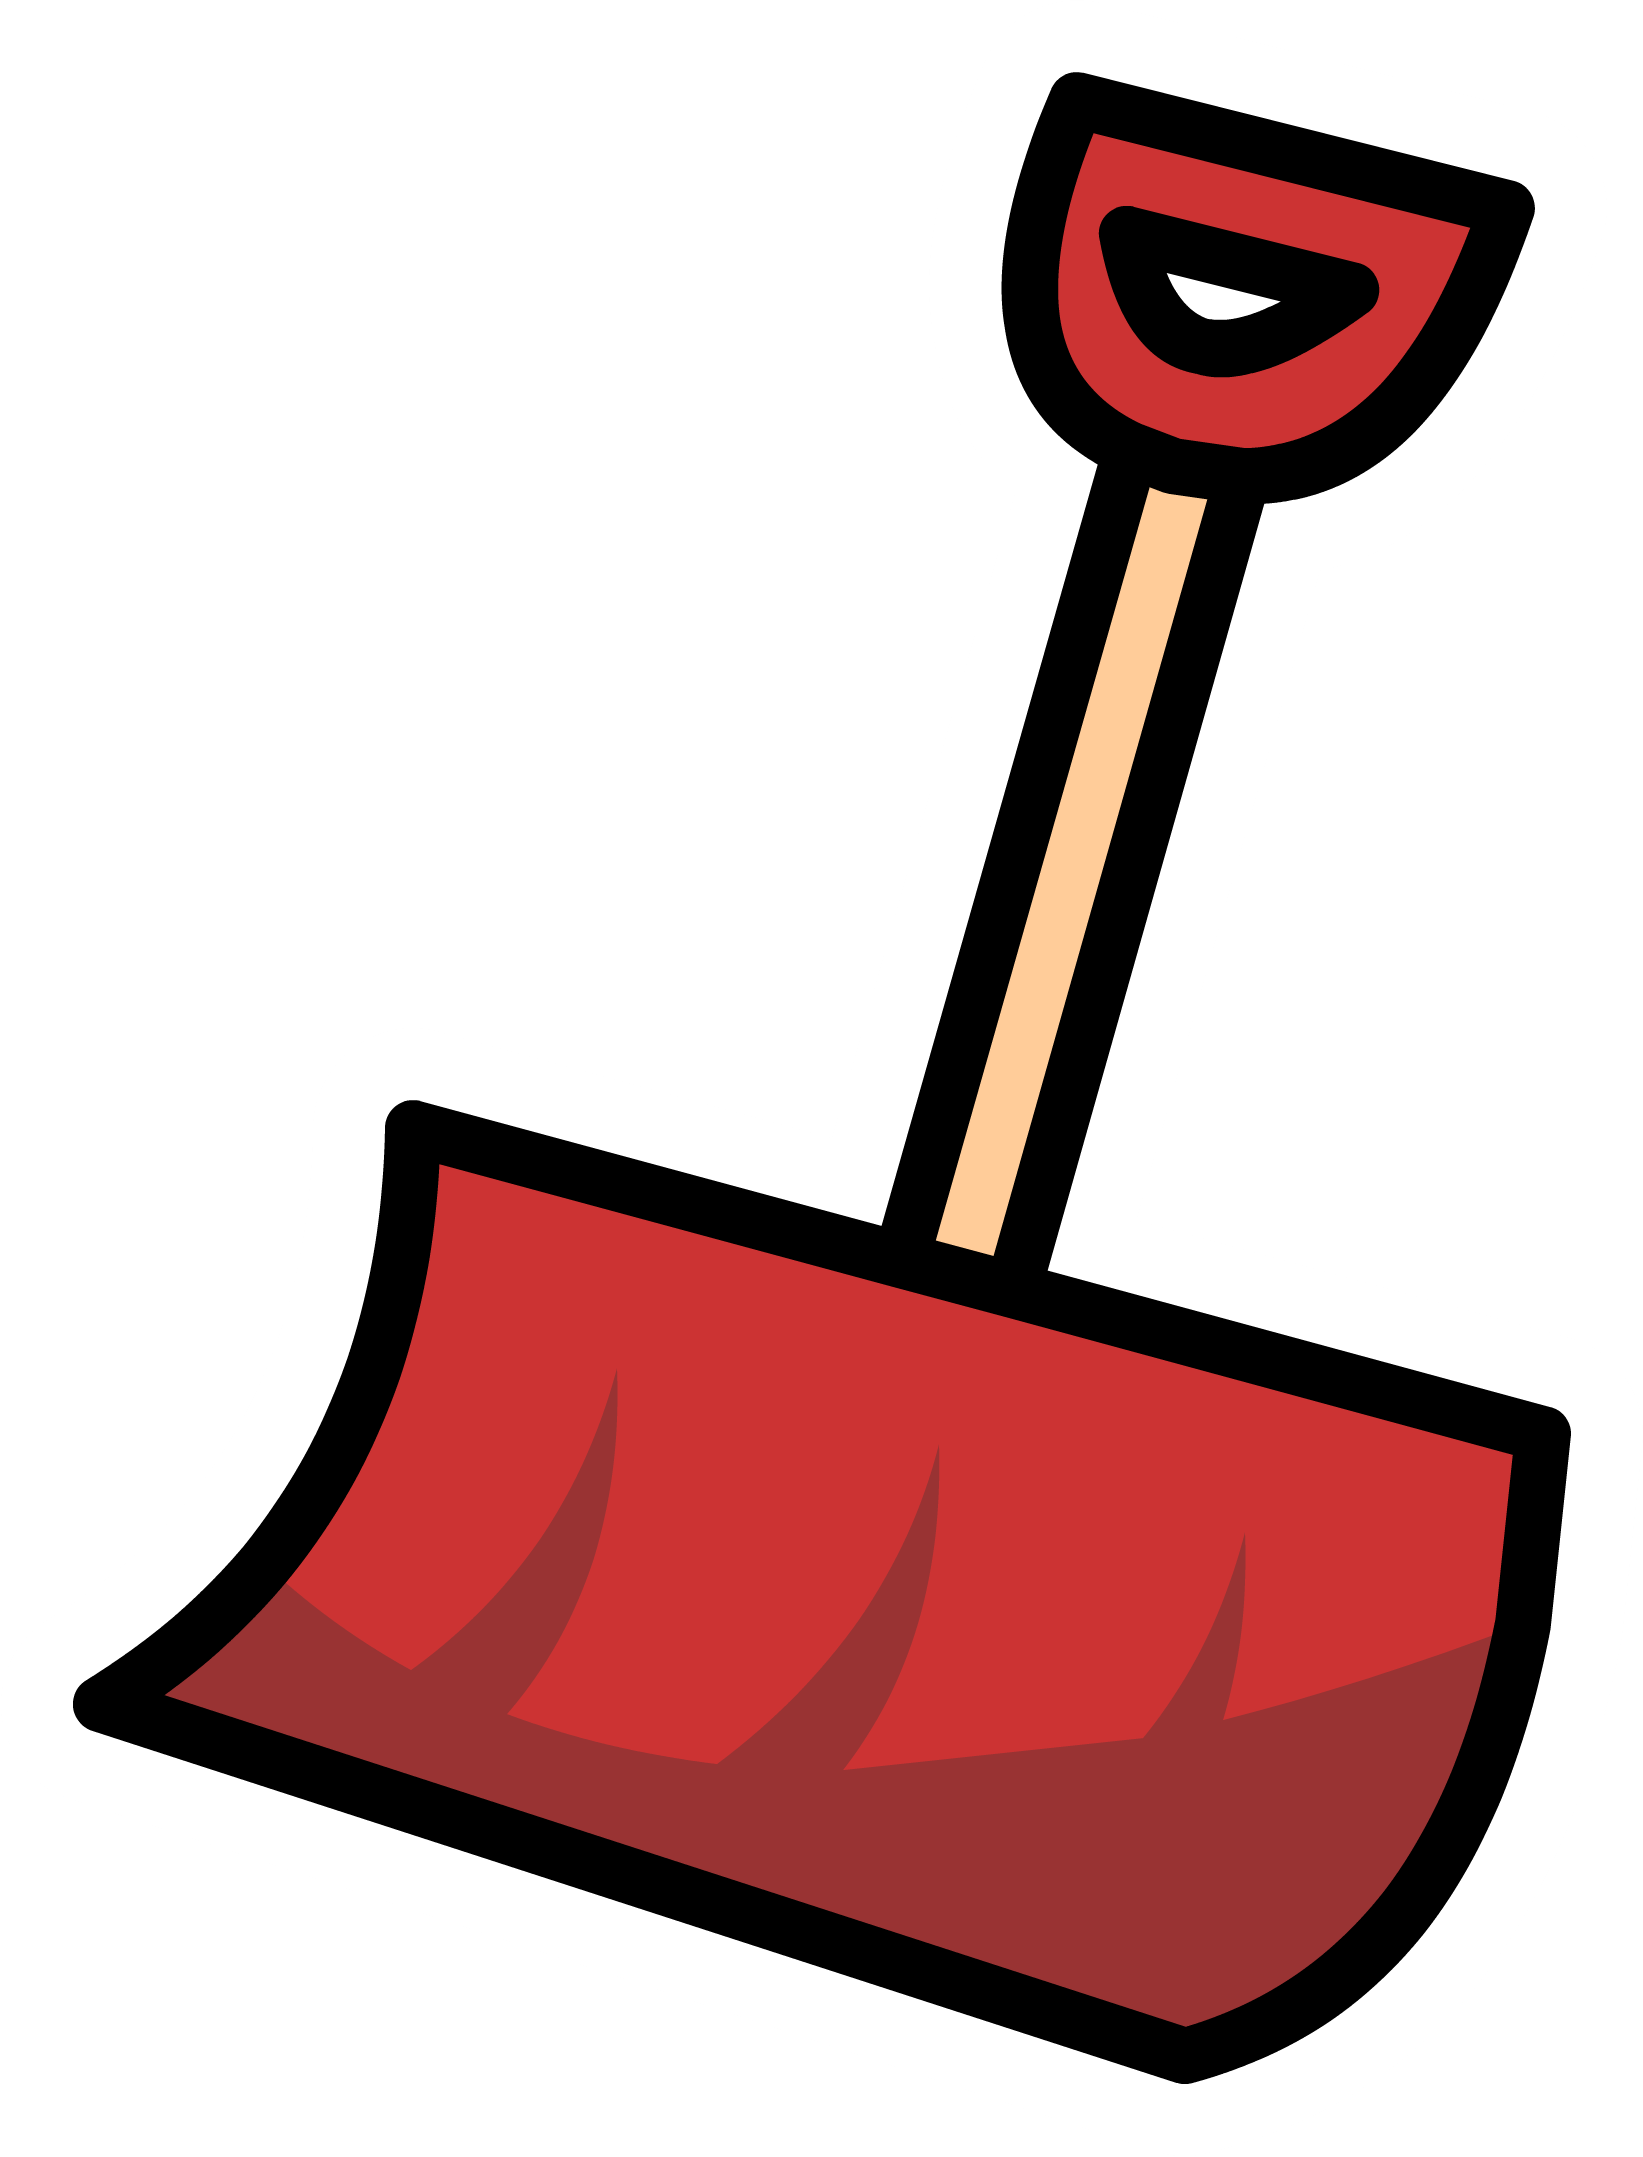 Snow shovel png. Image red pin club